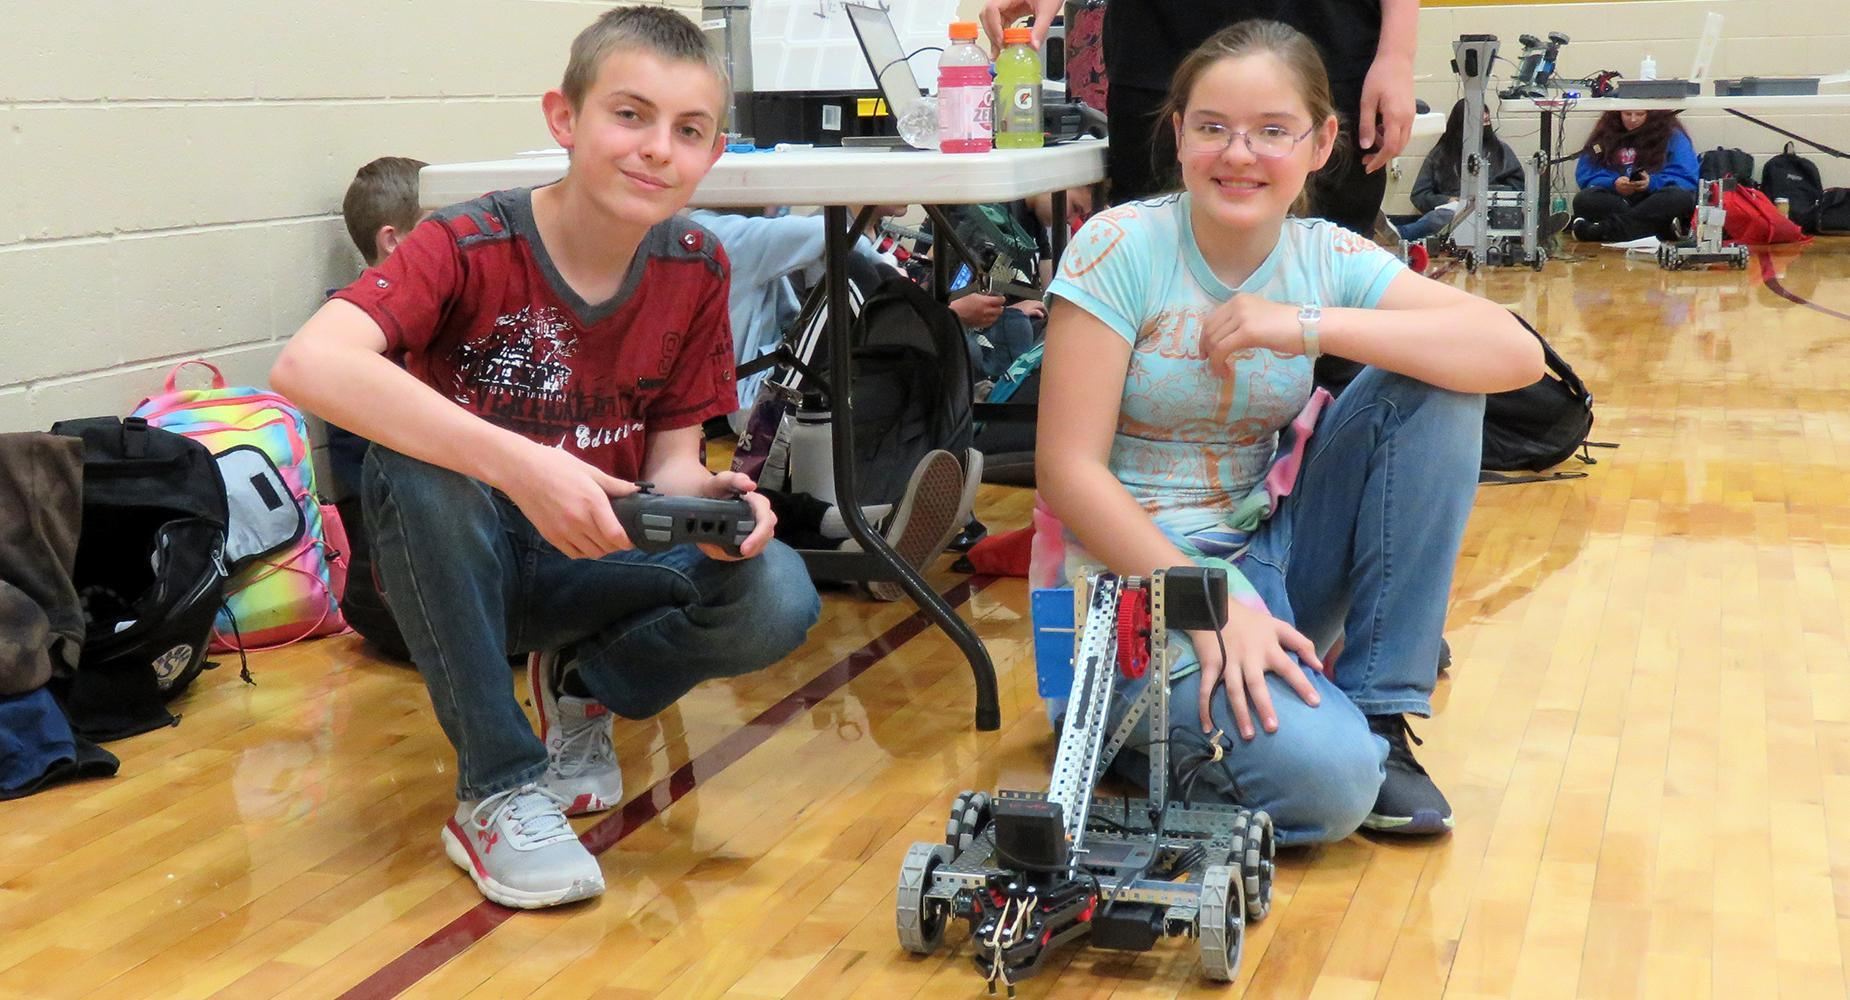 A boy in a red t-shirt and girls in a blue shirt pose with their robot at the East Valley gym.